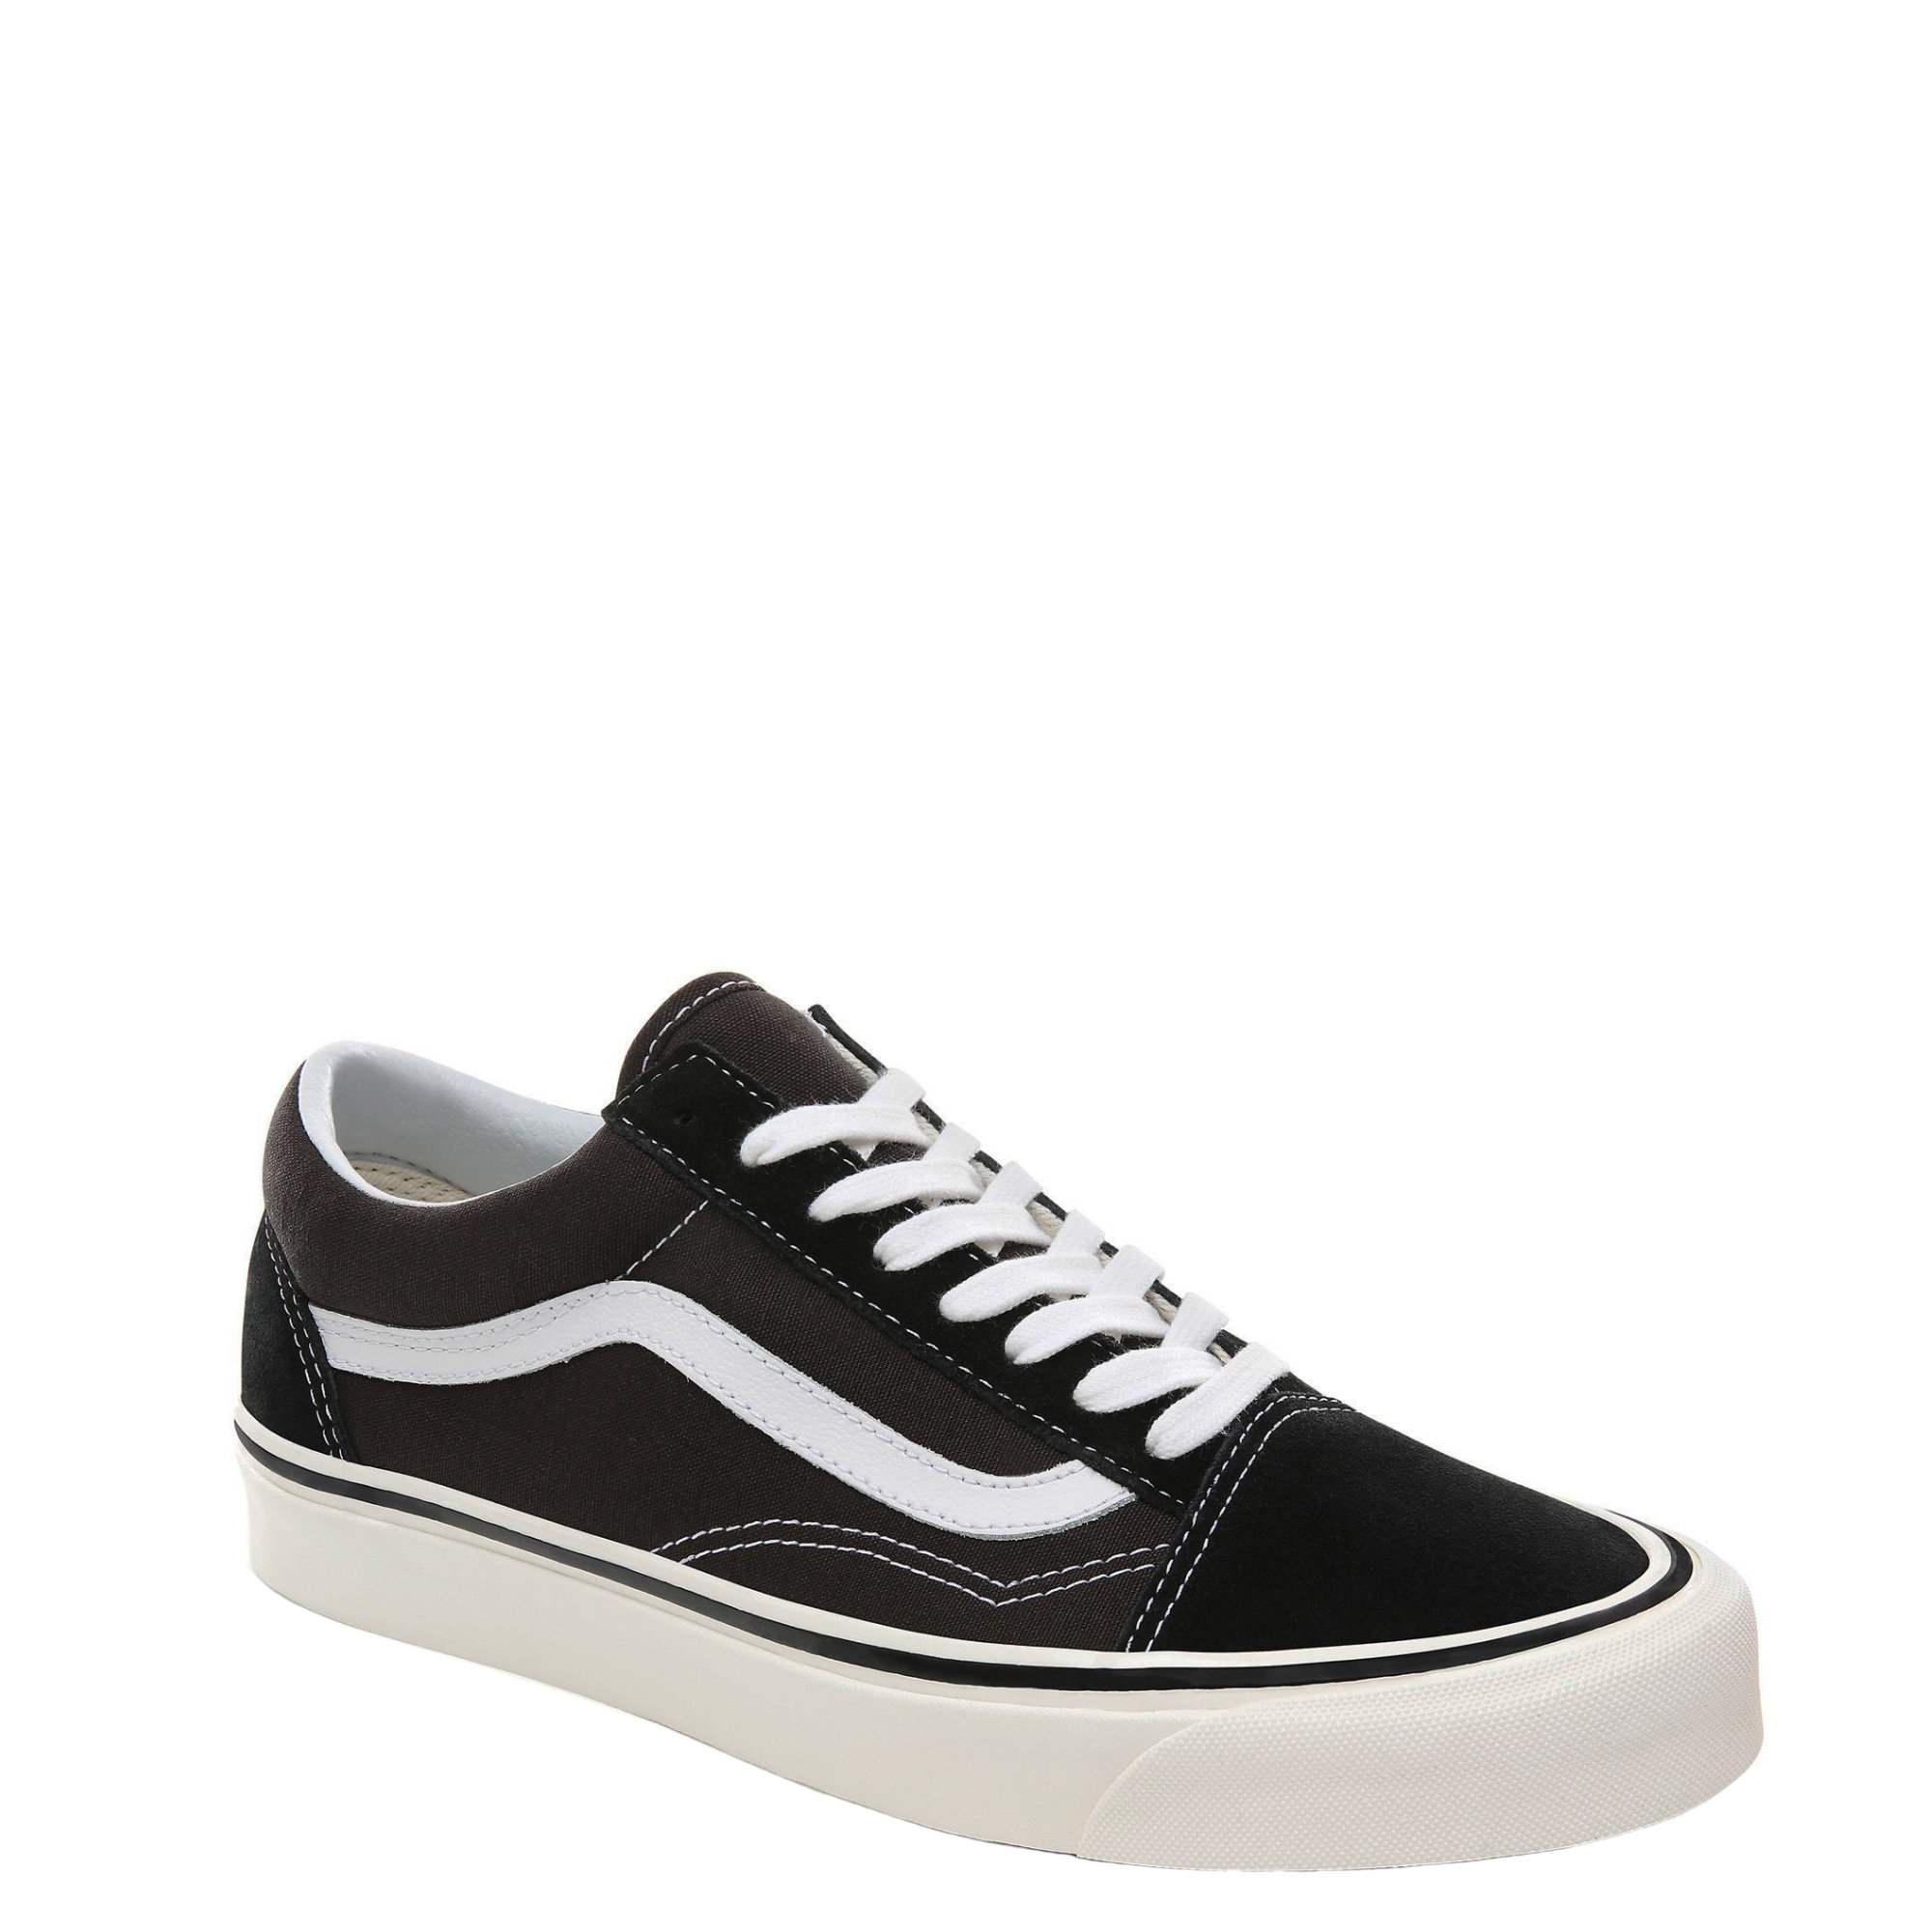 8cb5c06b1e VANS ANAHEIM FACTORY OLD SKOOL 36 DX BLACK